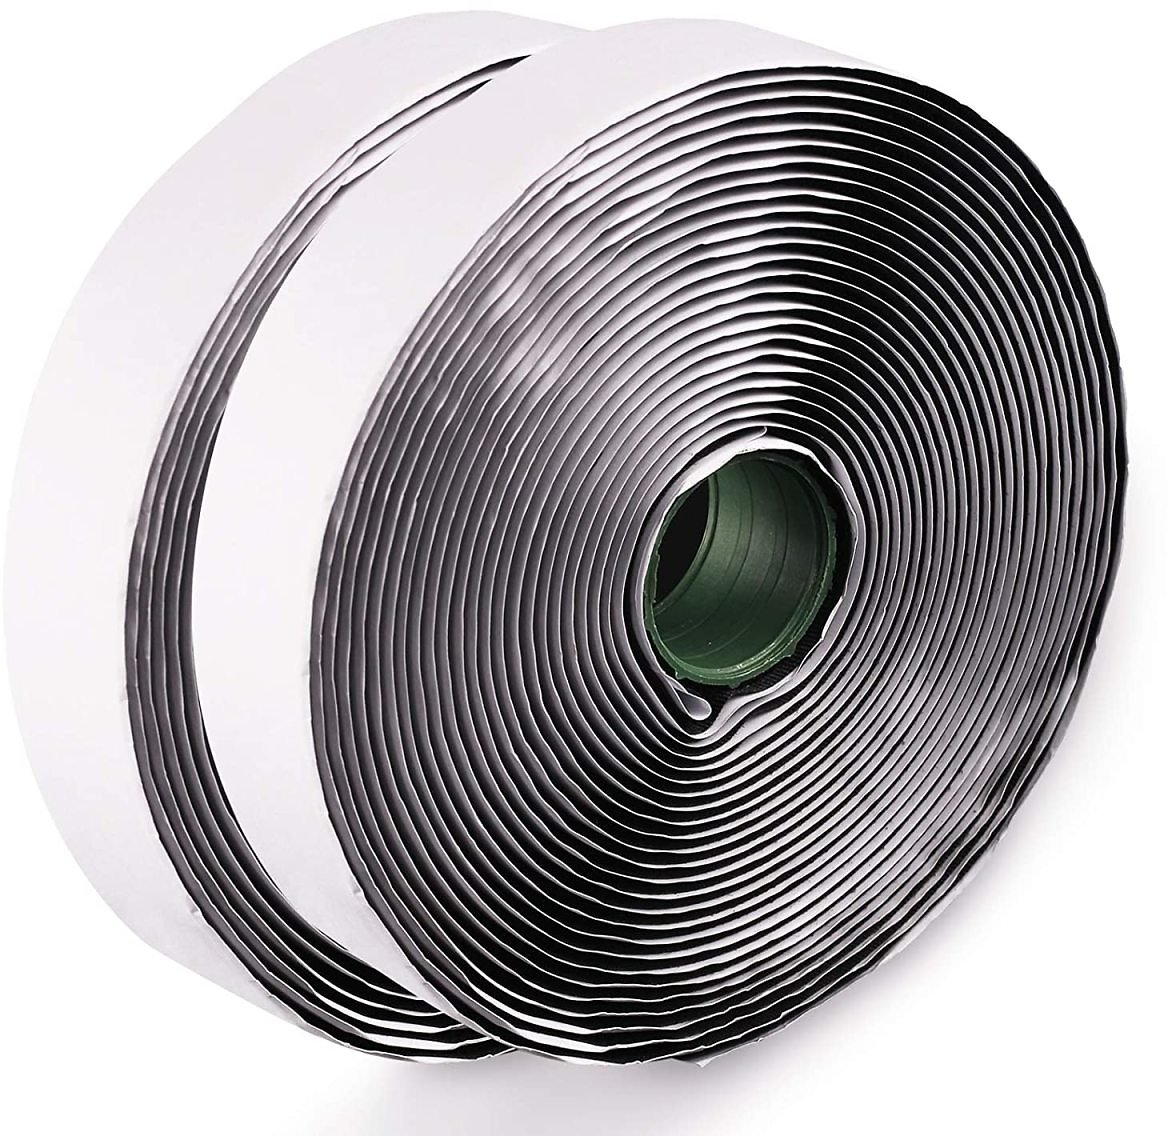 LLPT 1 Inch X 23 Feet Heavy Duty Adhesive Hook Loop Strip Mounting Tape for $7.08